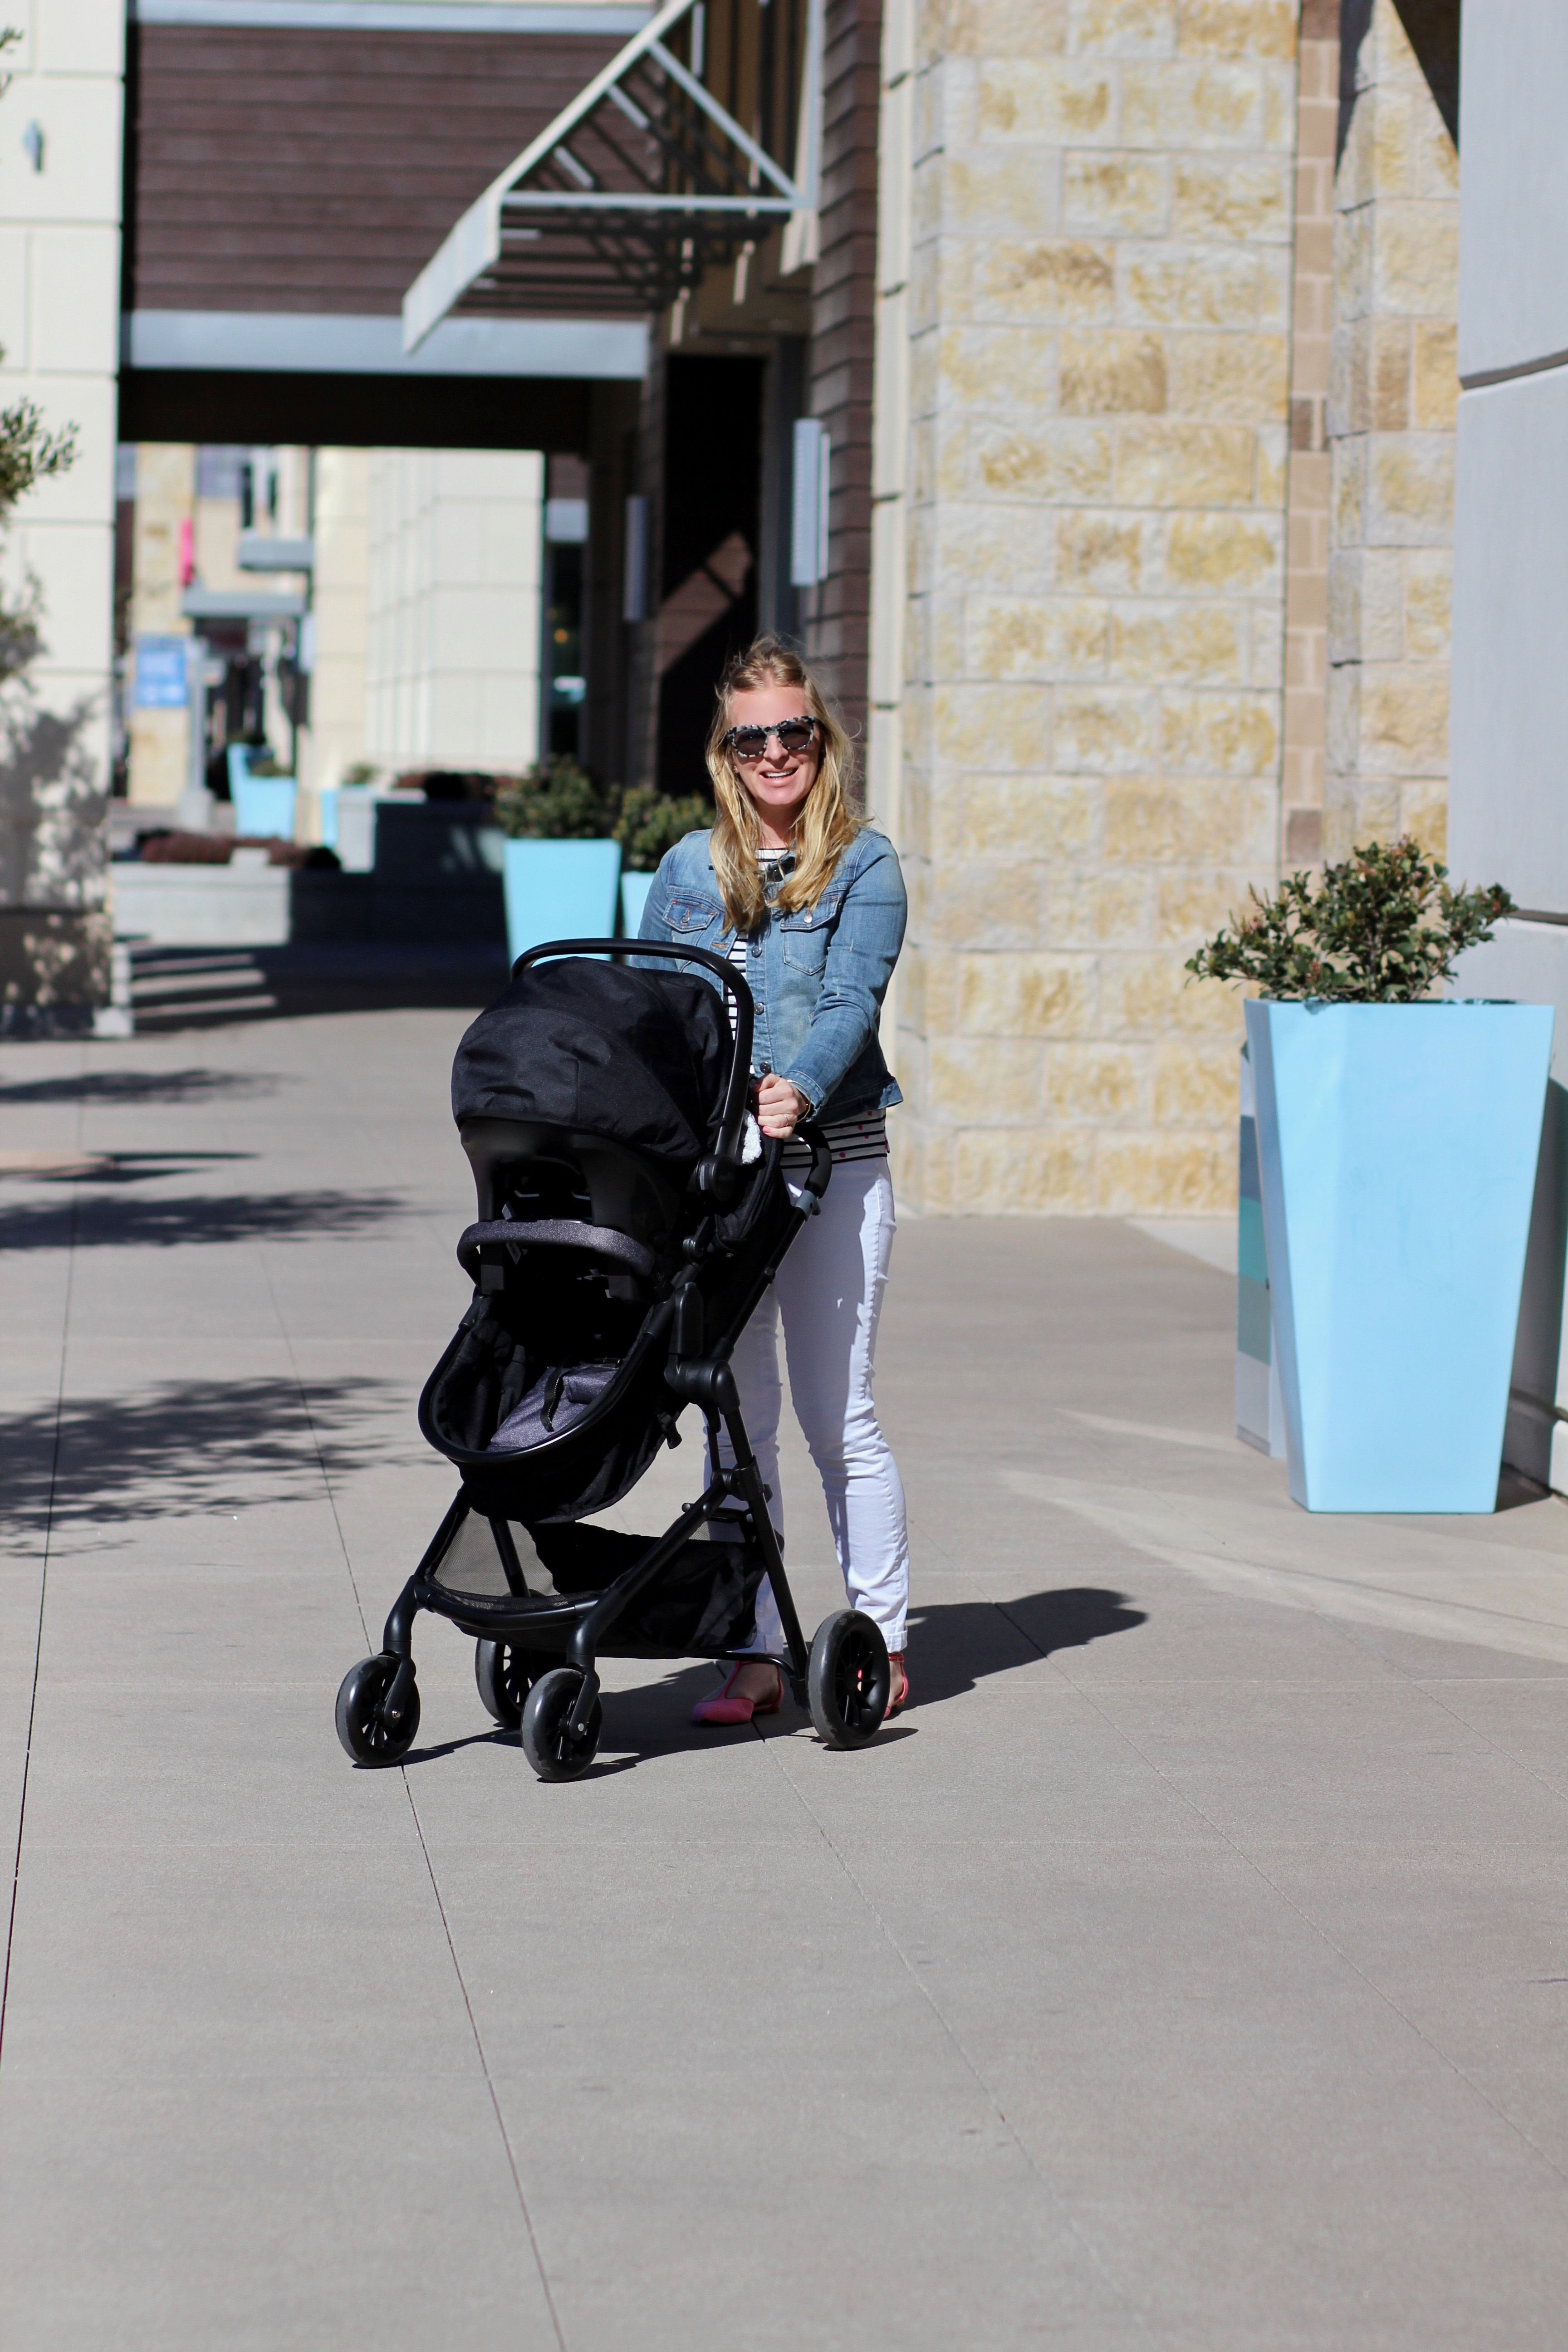 Awesome new travel system by evenflo Travel system